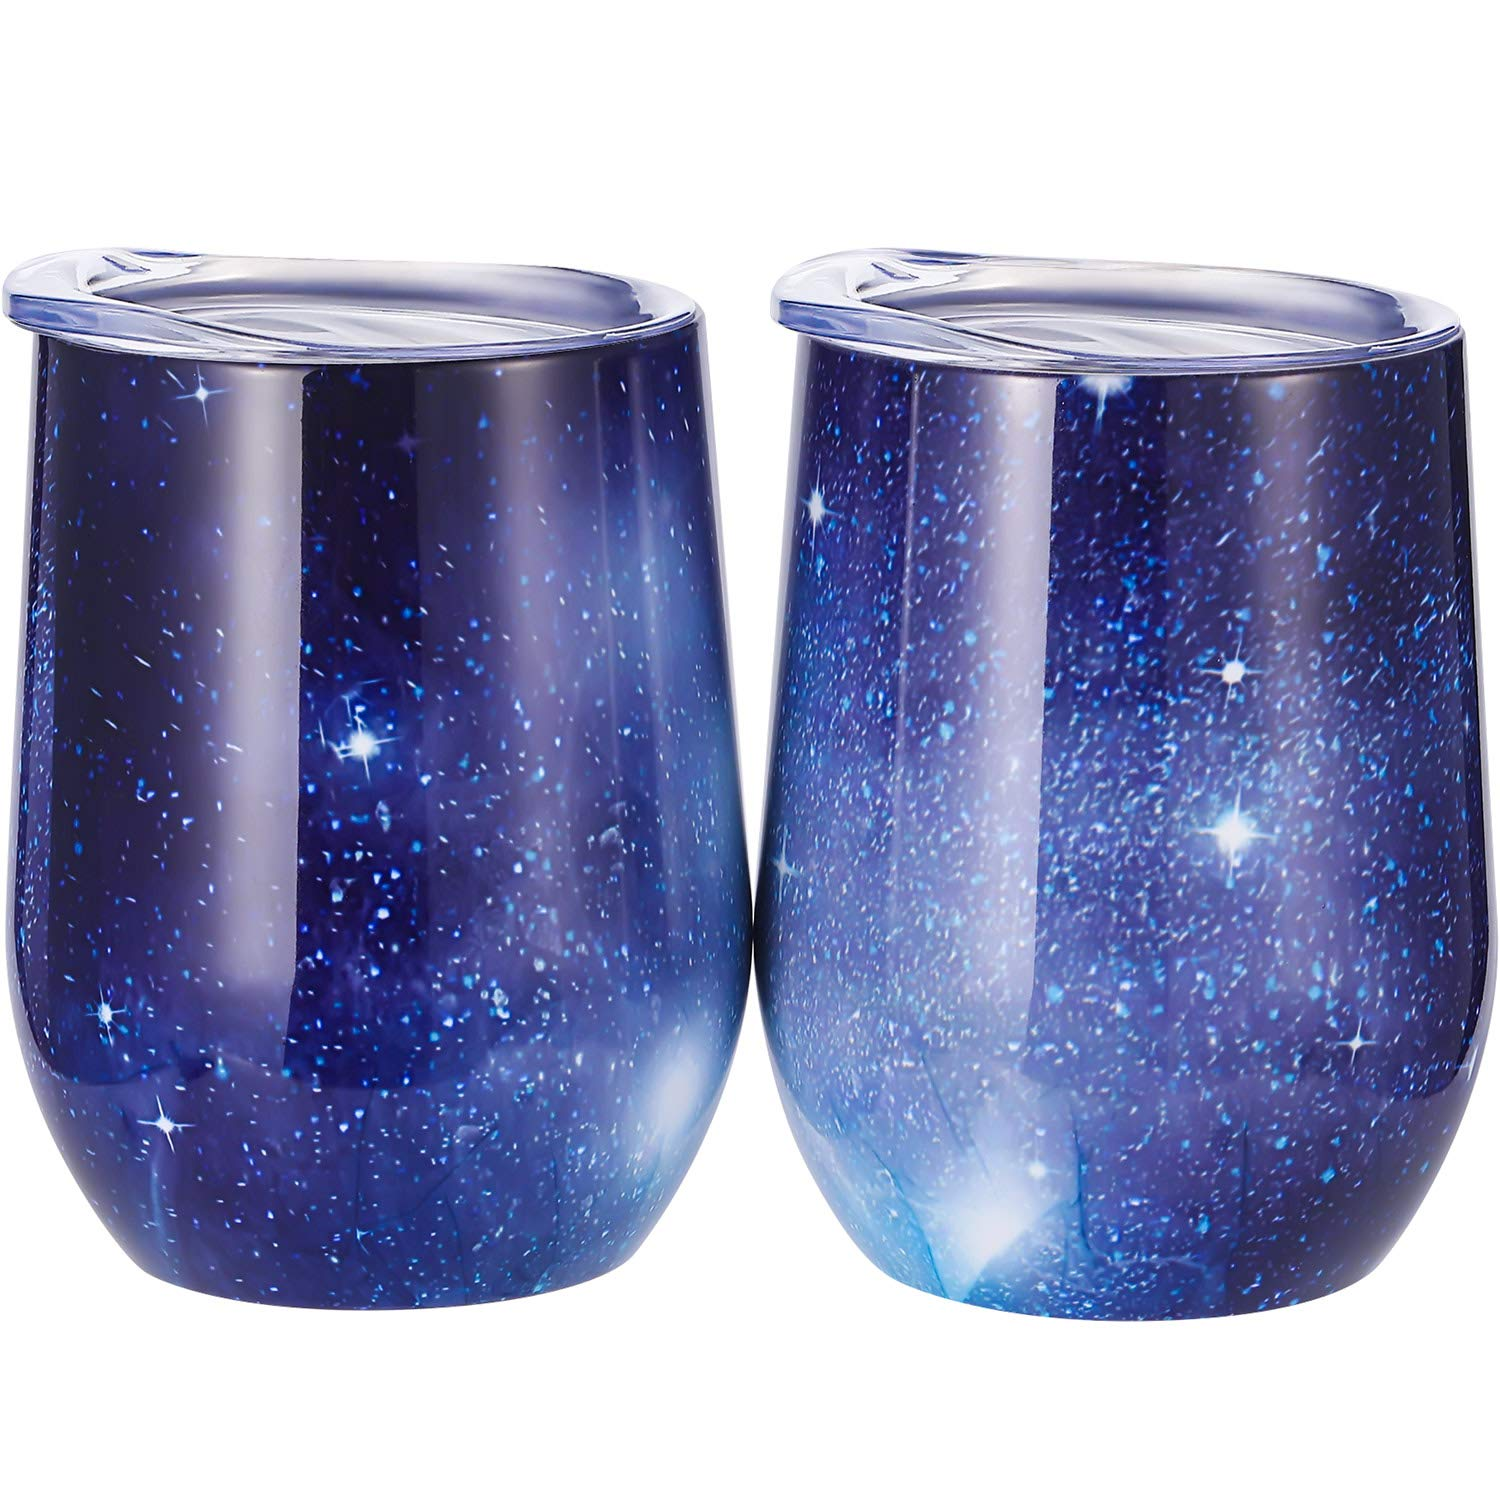 Skylety 12 oz Double-insulated Stemless Glass, Stainless Steel Tumbler Cup with Lids for Wine, Coffee, Drinks, Champagne, Cocktails, 2 Sets (Starry Blue)